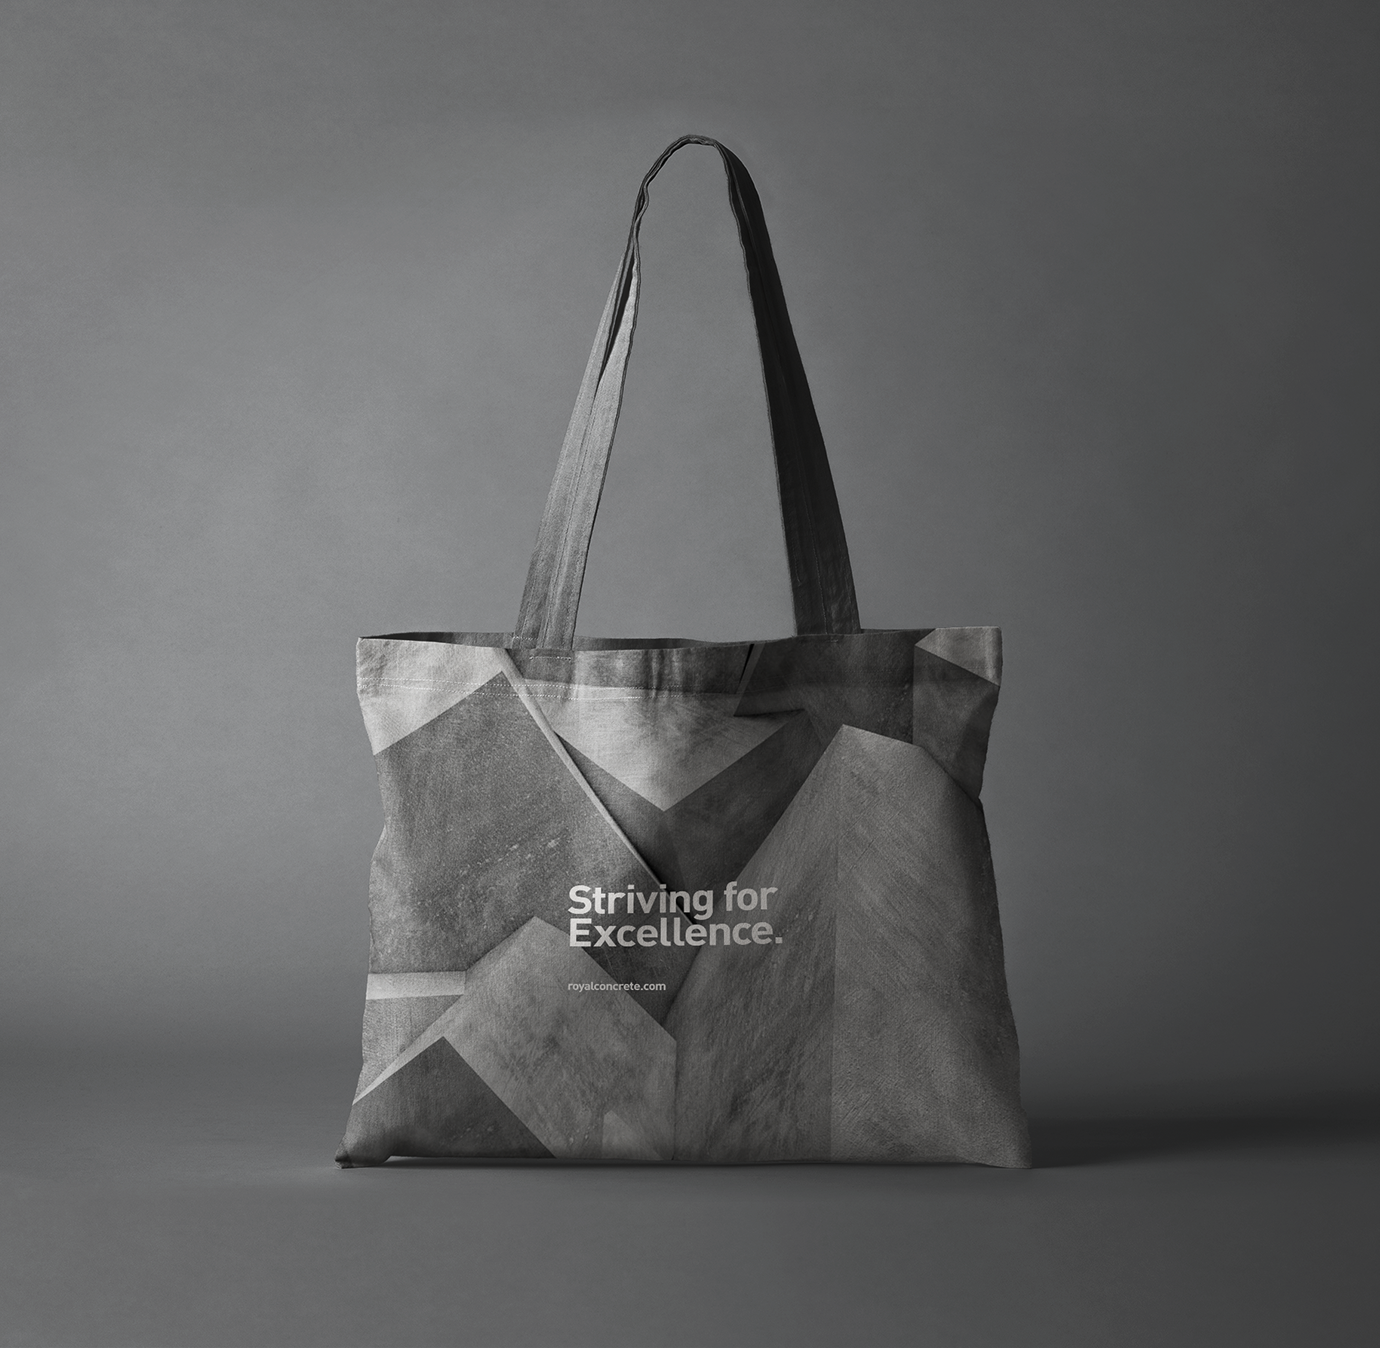 totebag02_royal_concrete_yoenpaperland